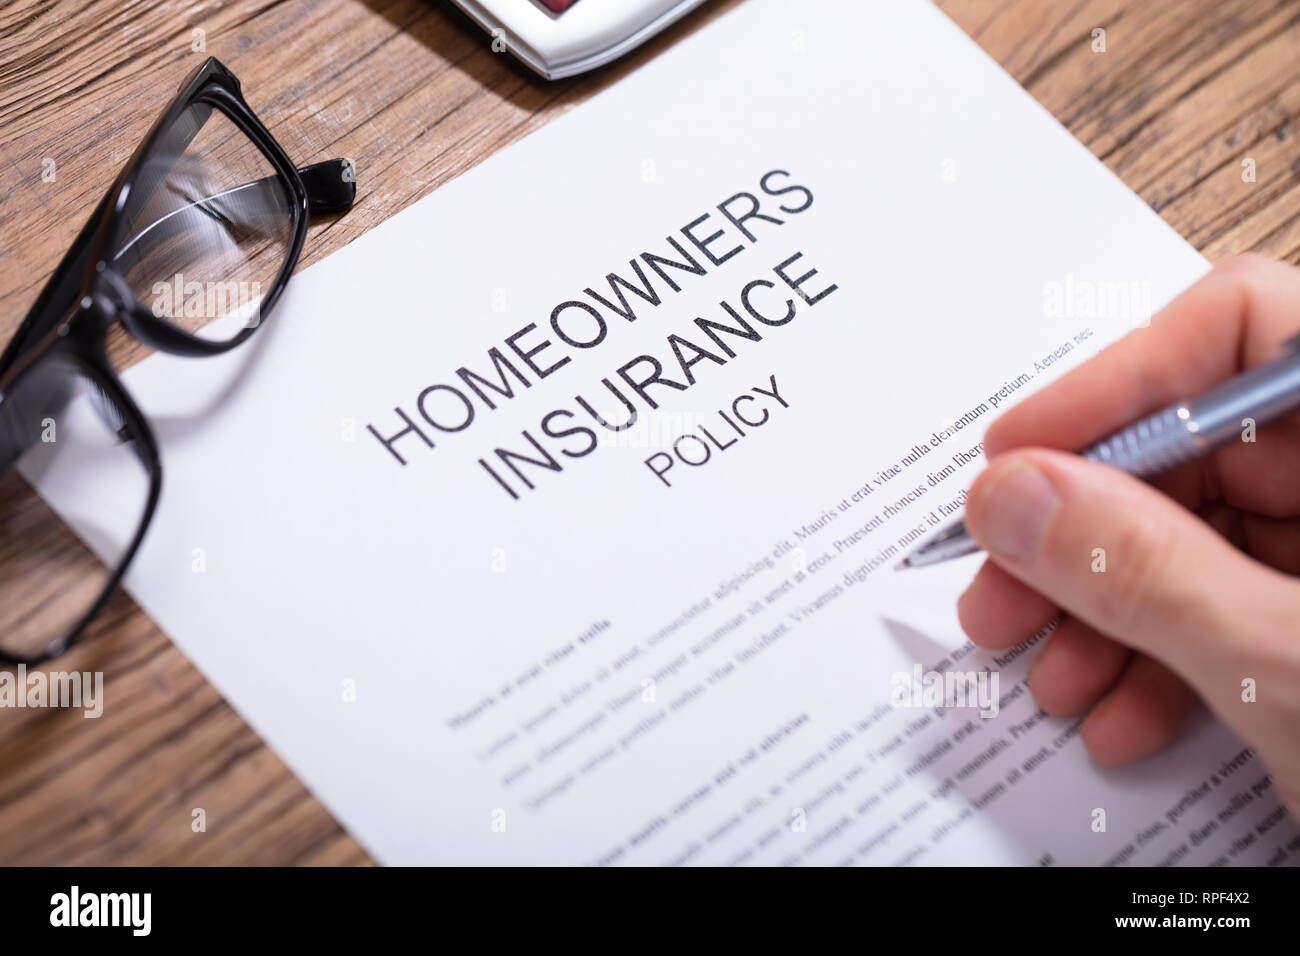 Overhead View Of A Person's Hand Filling Homeowners Insurance Policy Form Over Wooden Desk - Stock Image